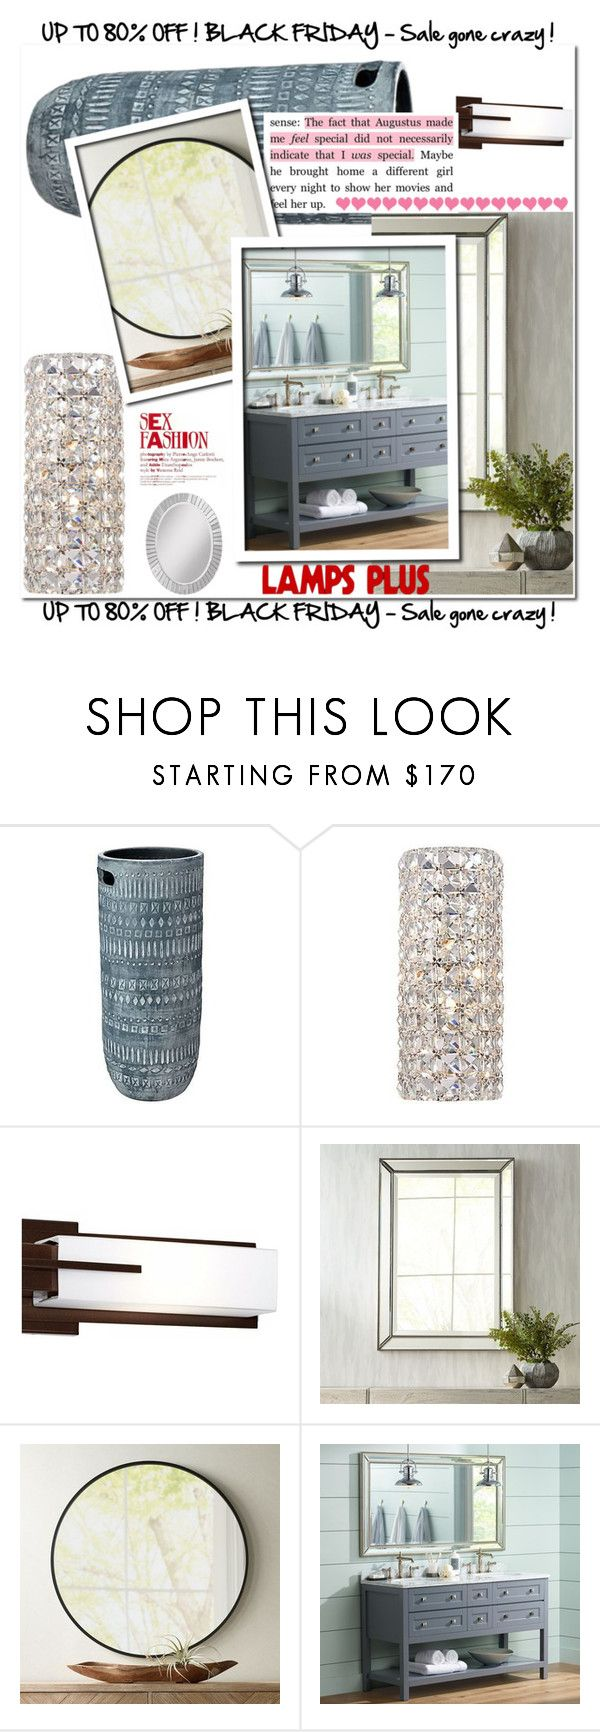 """""""Bathroom Designs with Lamps Plus"""" by enesarotic ❤ liked on Polyvore featuring Jamie Young, Possini Euro Design, Noble Park and bathroom"""